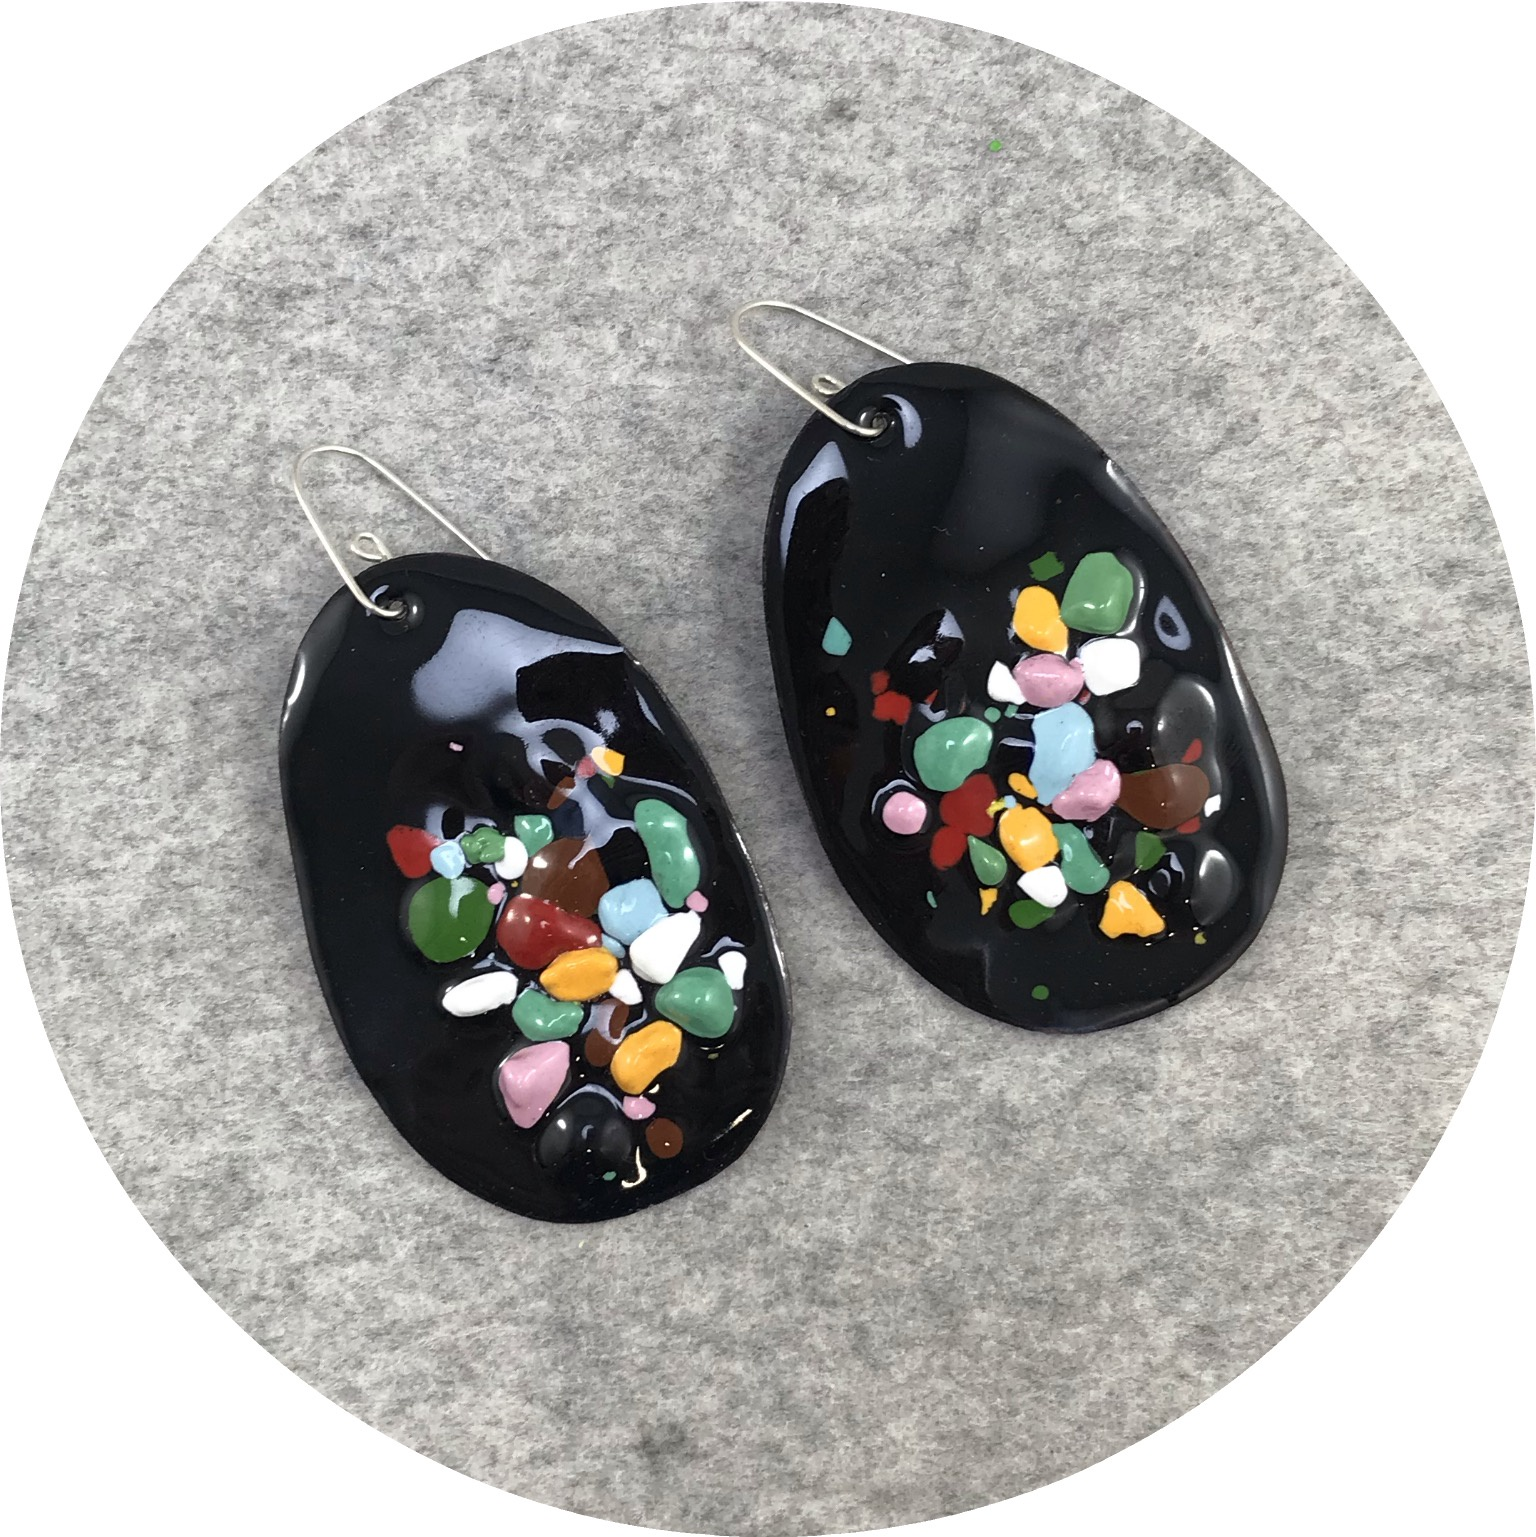 Jenna O'Brien - Large Queenie Earrings in Black Enamel with Colourful Flecks